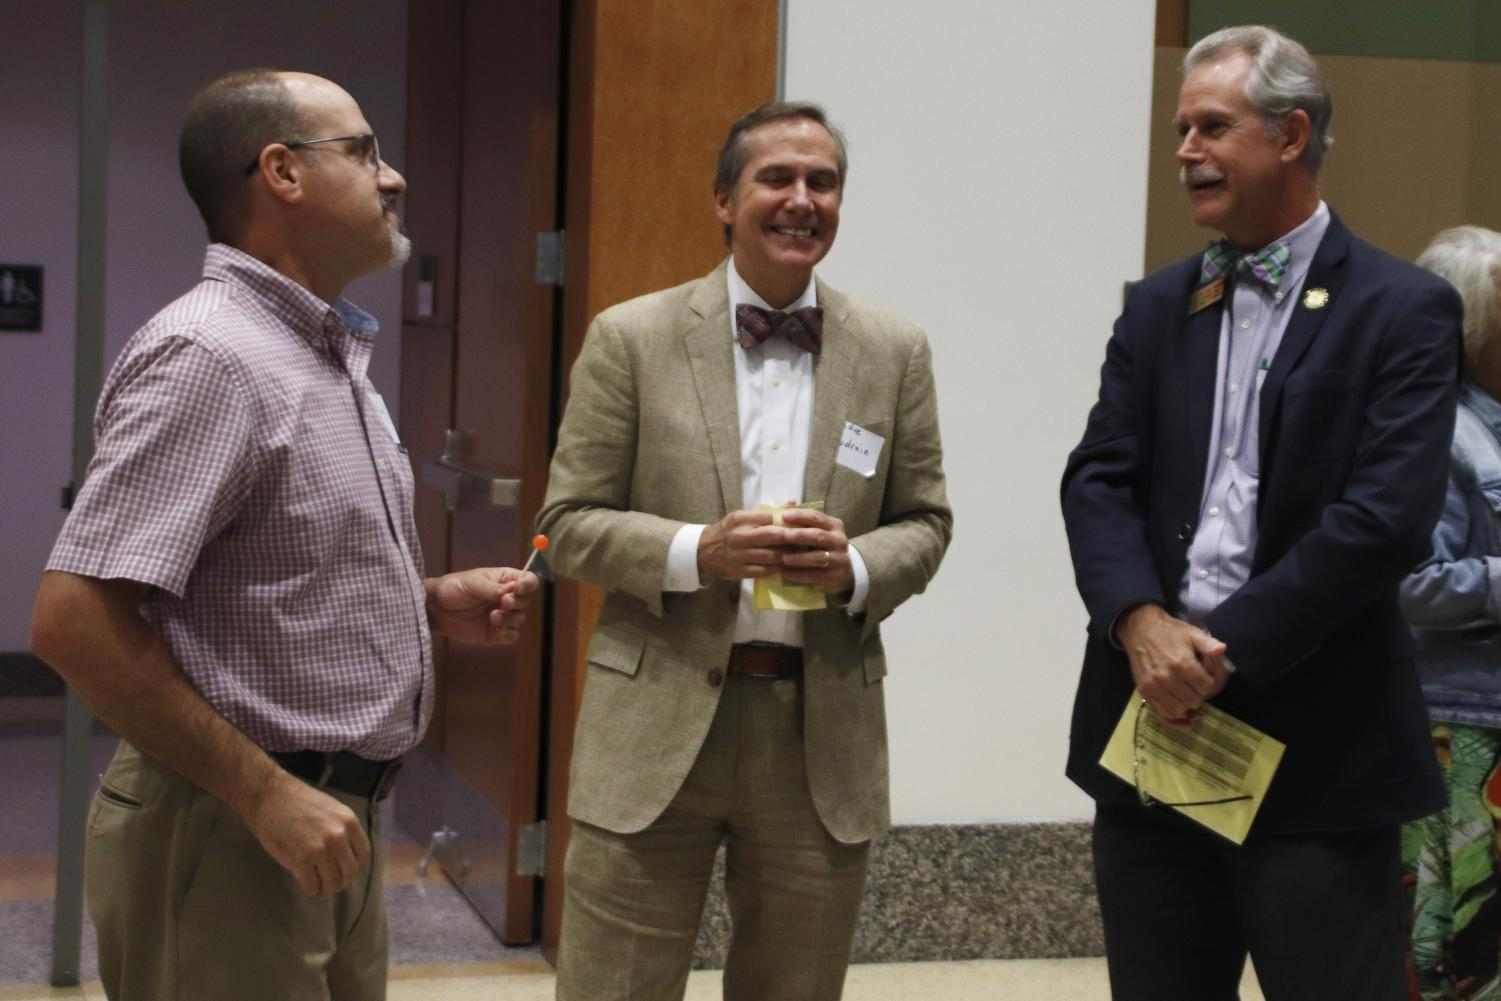 Students had the opportunity to meet with candidates from local, state and federal elections at